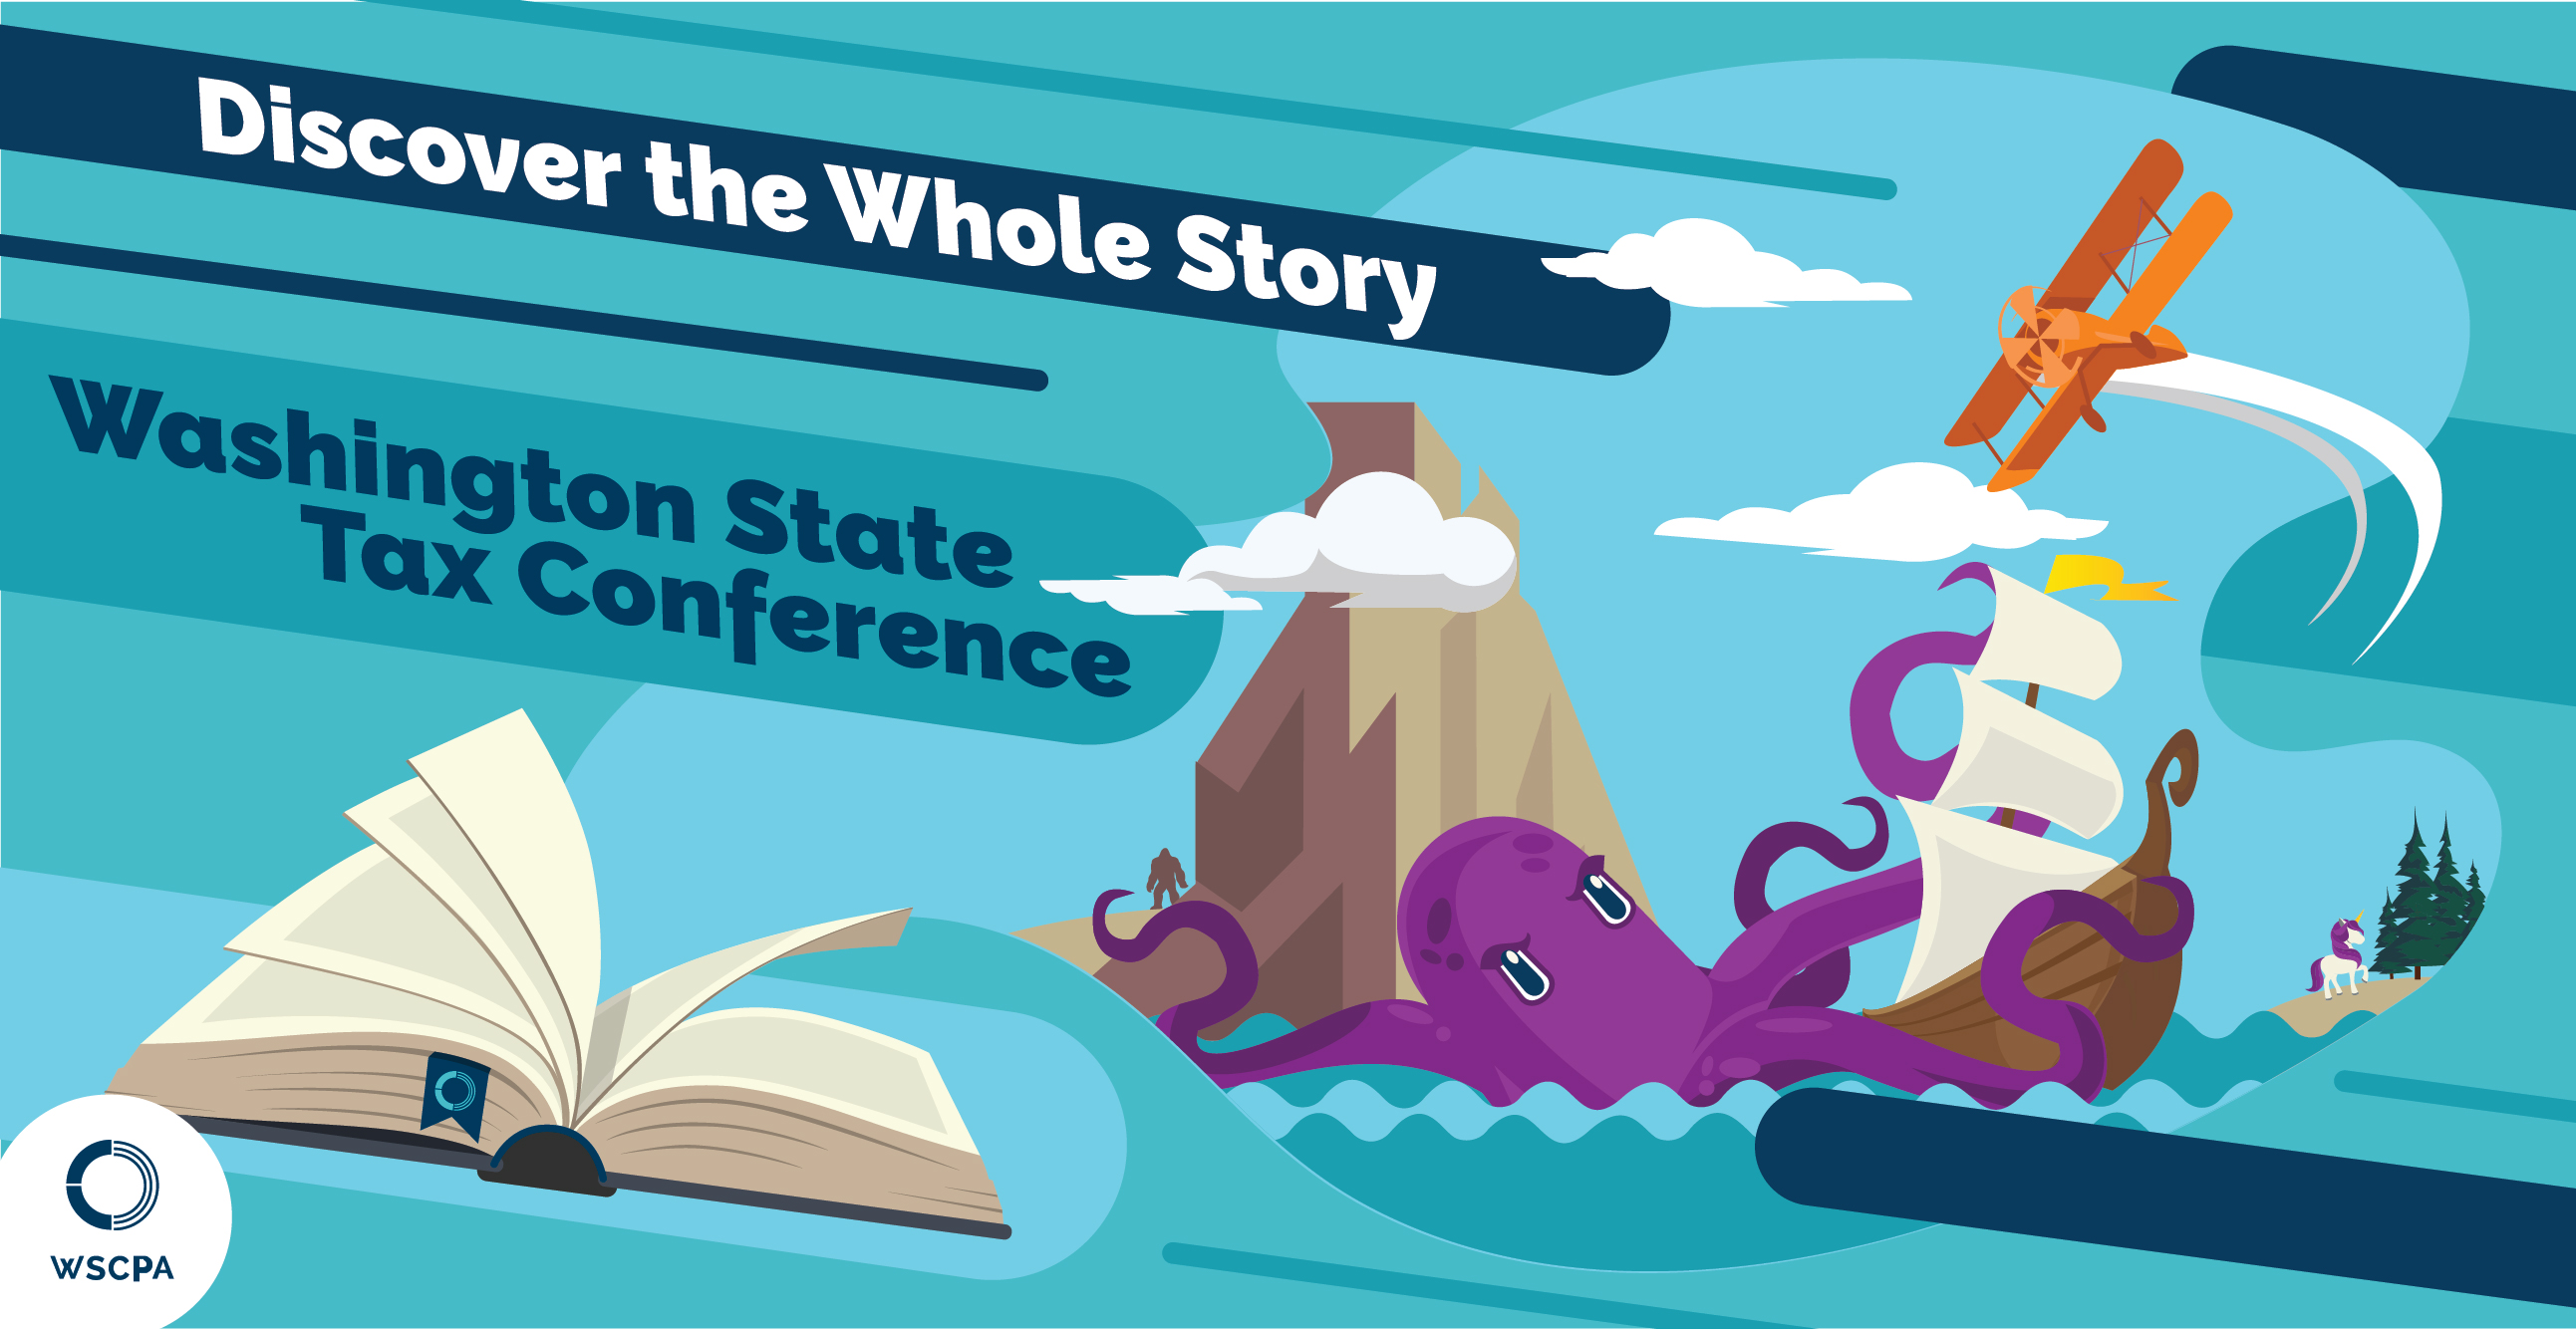 WSTC, discover the whole story